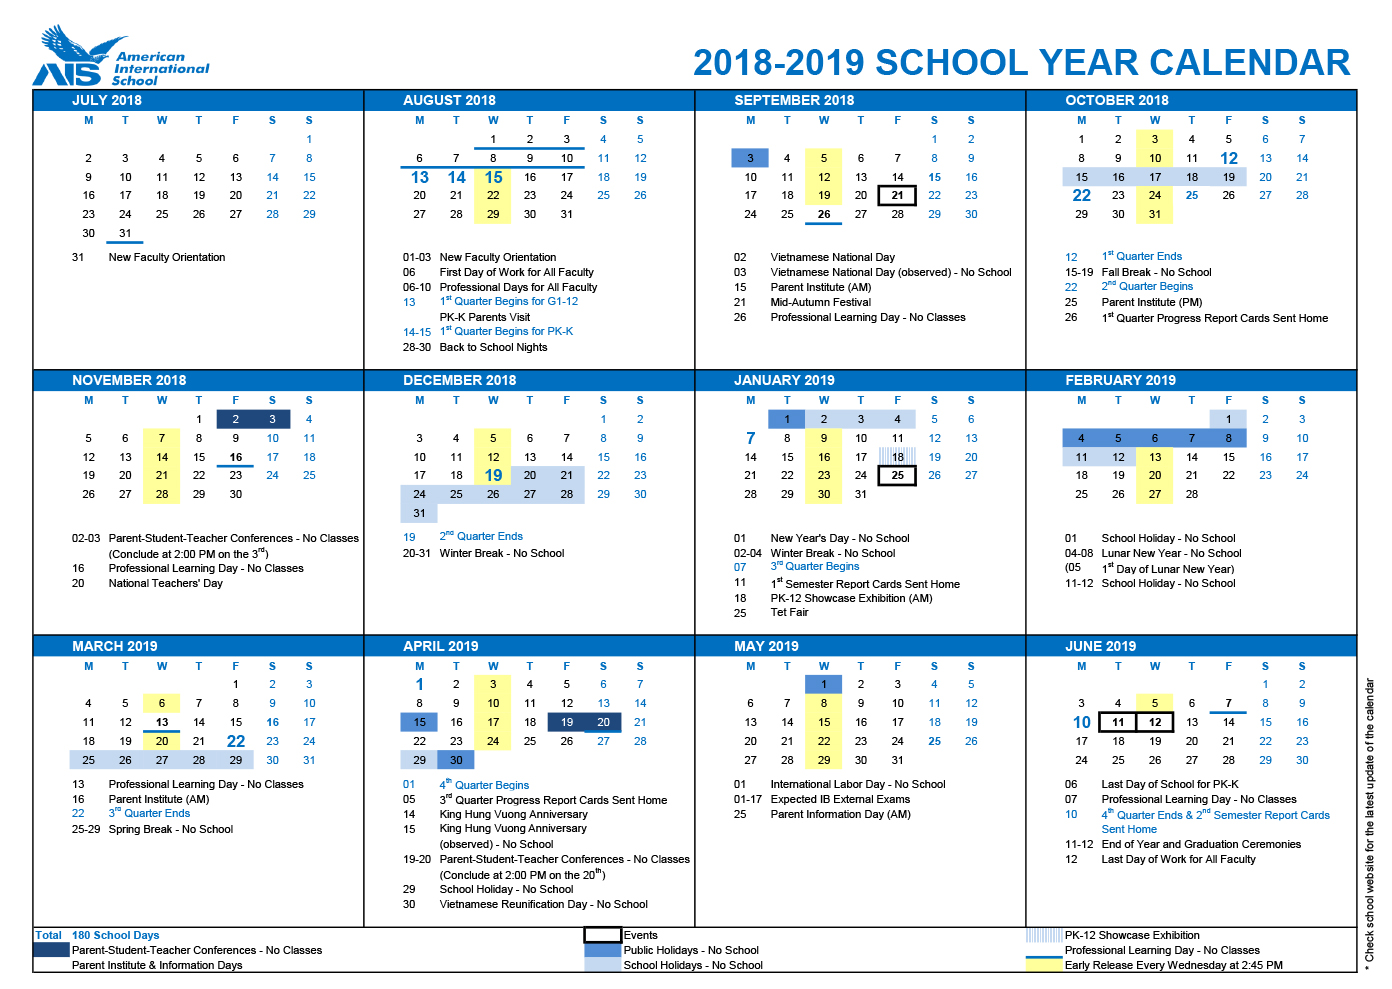 Vietnam School Year Calendar 2019 With American International